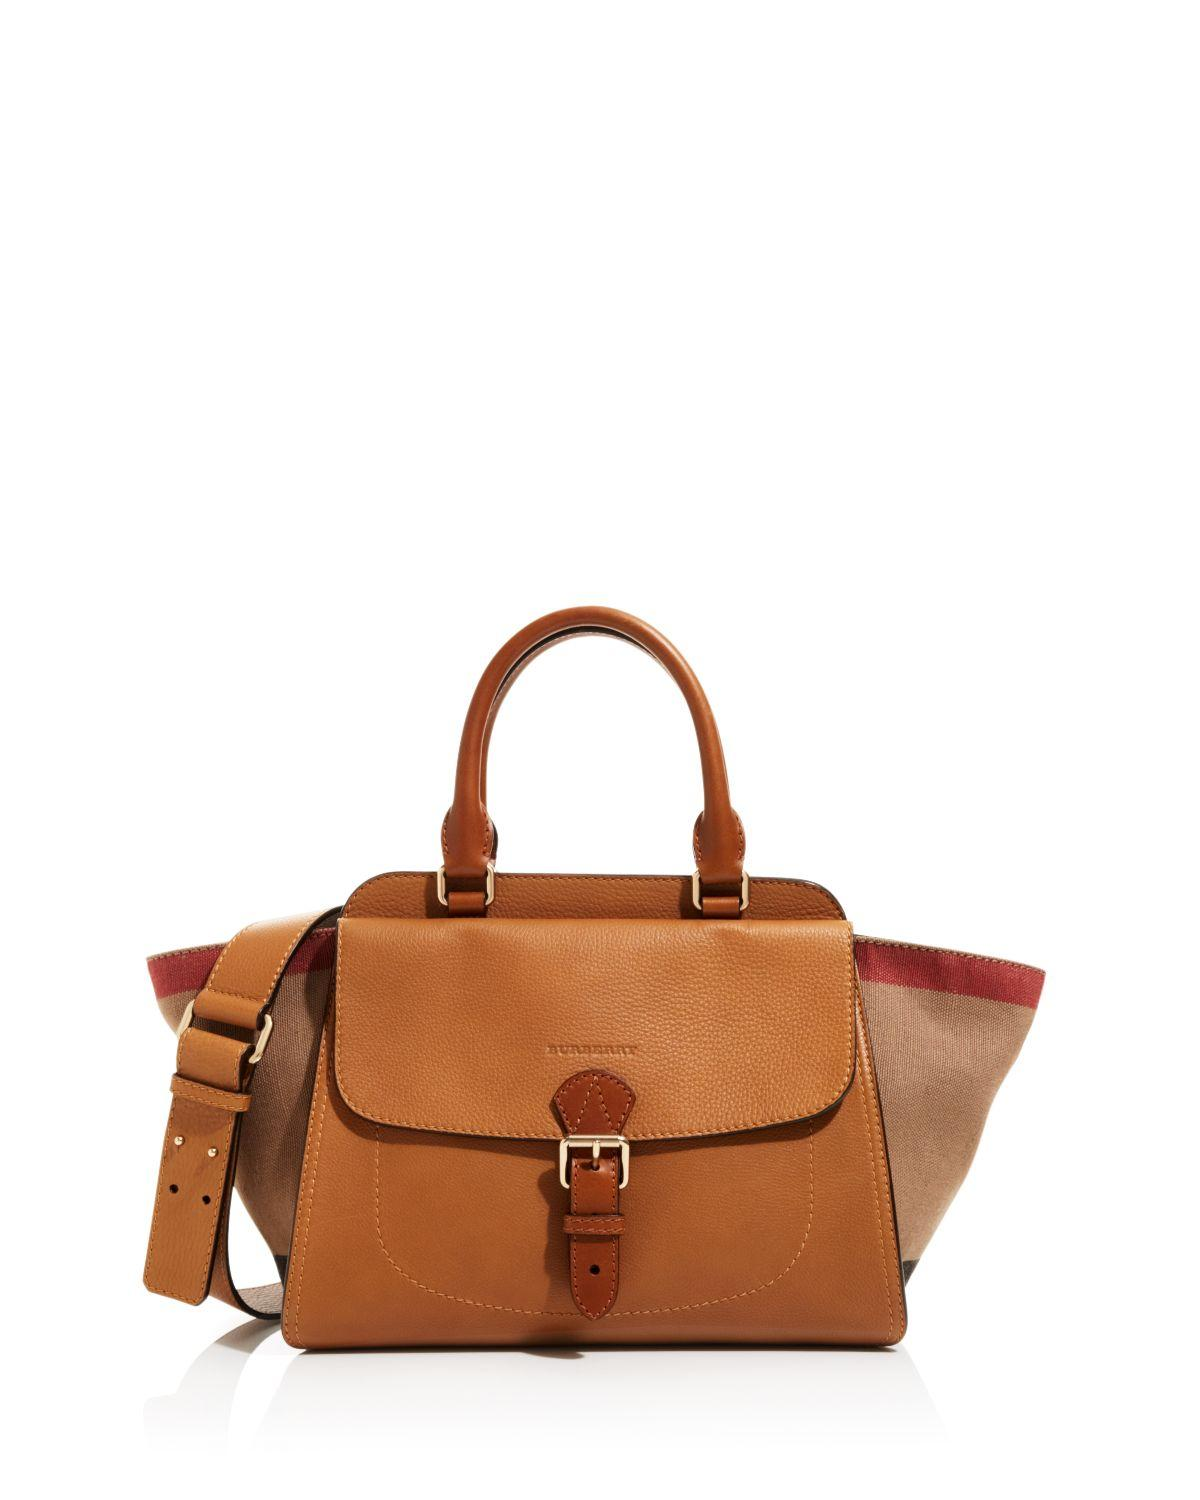 ... Tote Bag in Black  good looking cb2e3 32434 Lyst - Burberry Medium  Harcourt Canvas Check Satchel in Brow ... 0b8a3f9e68